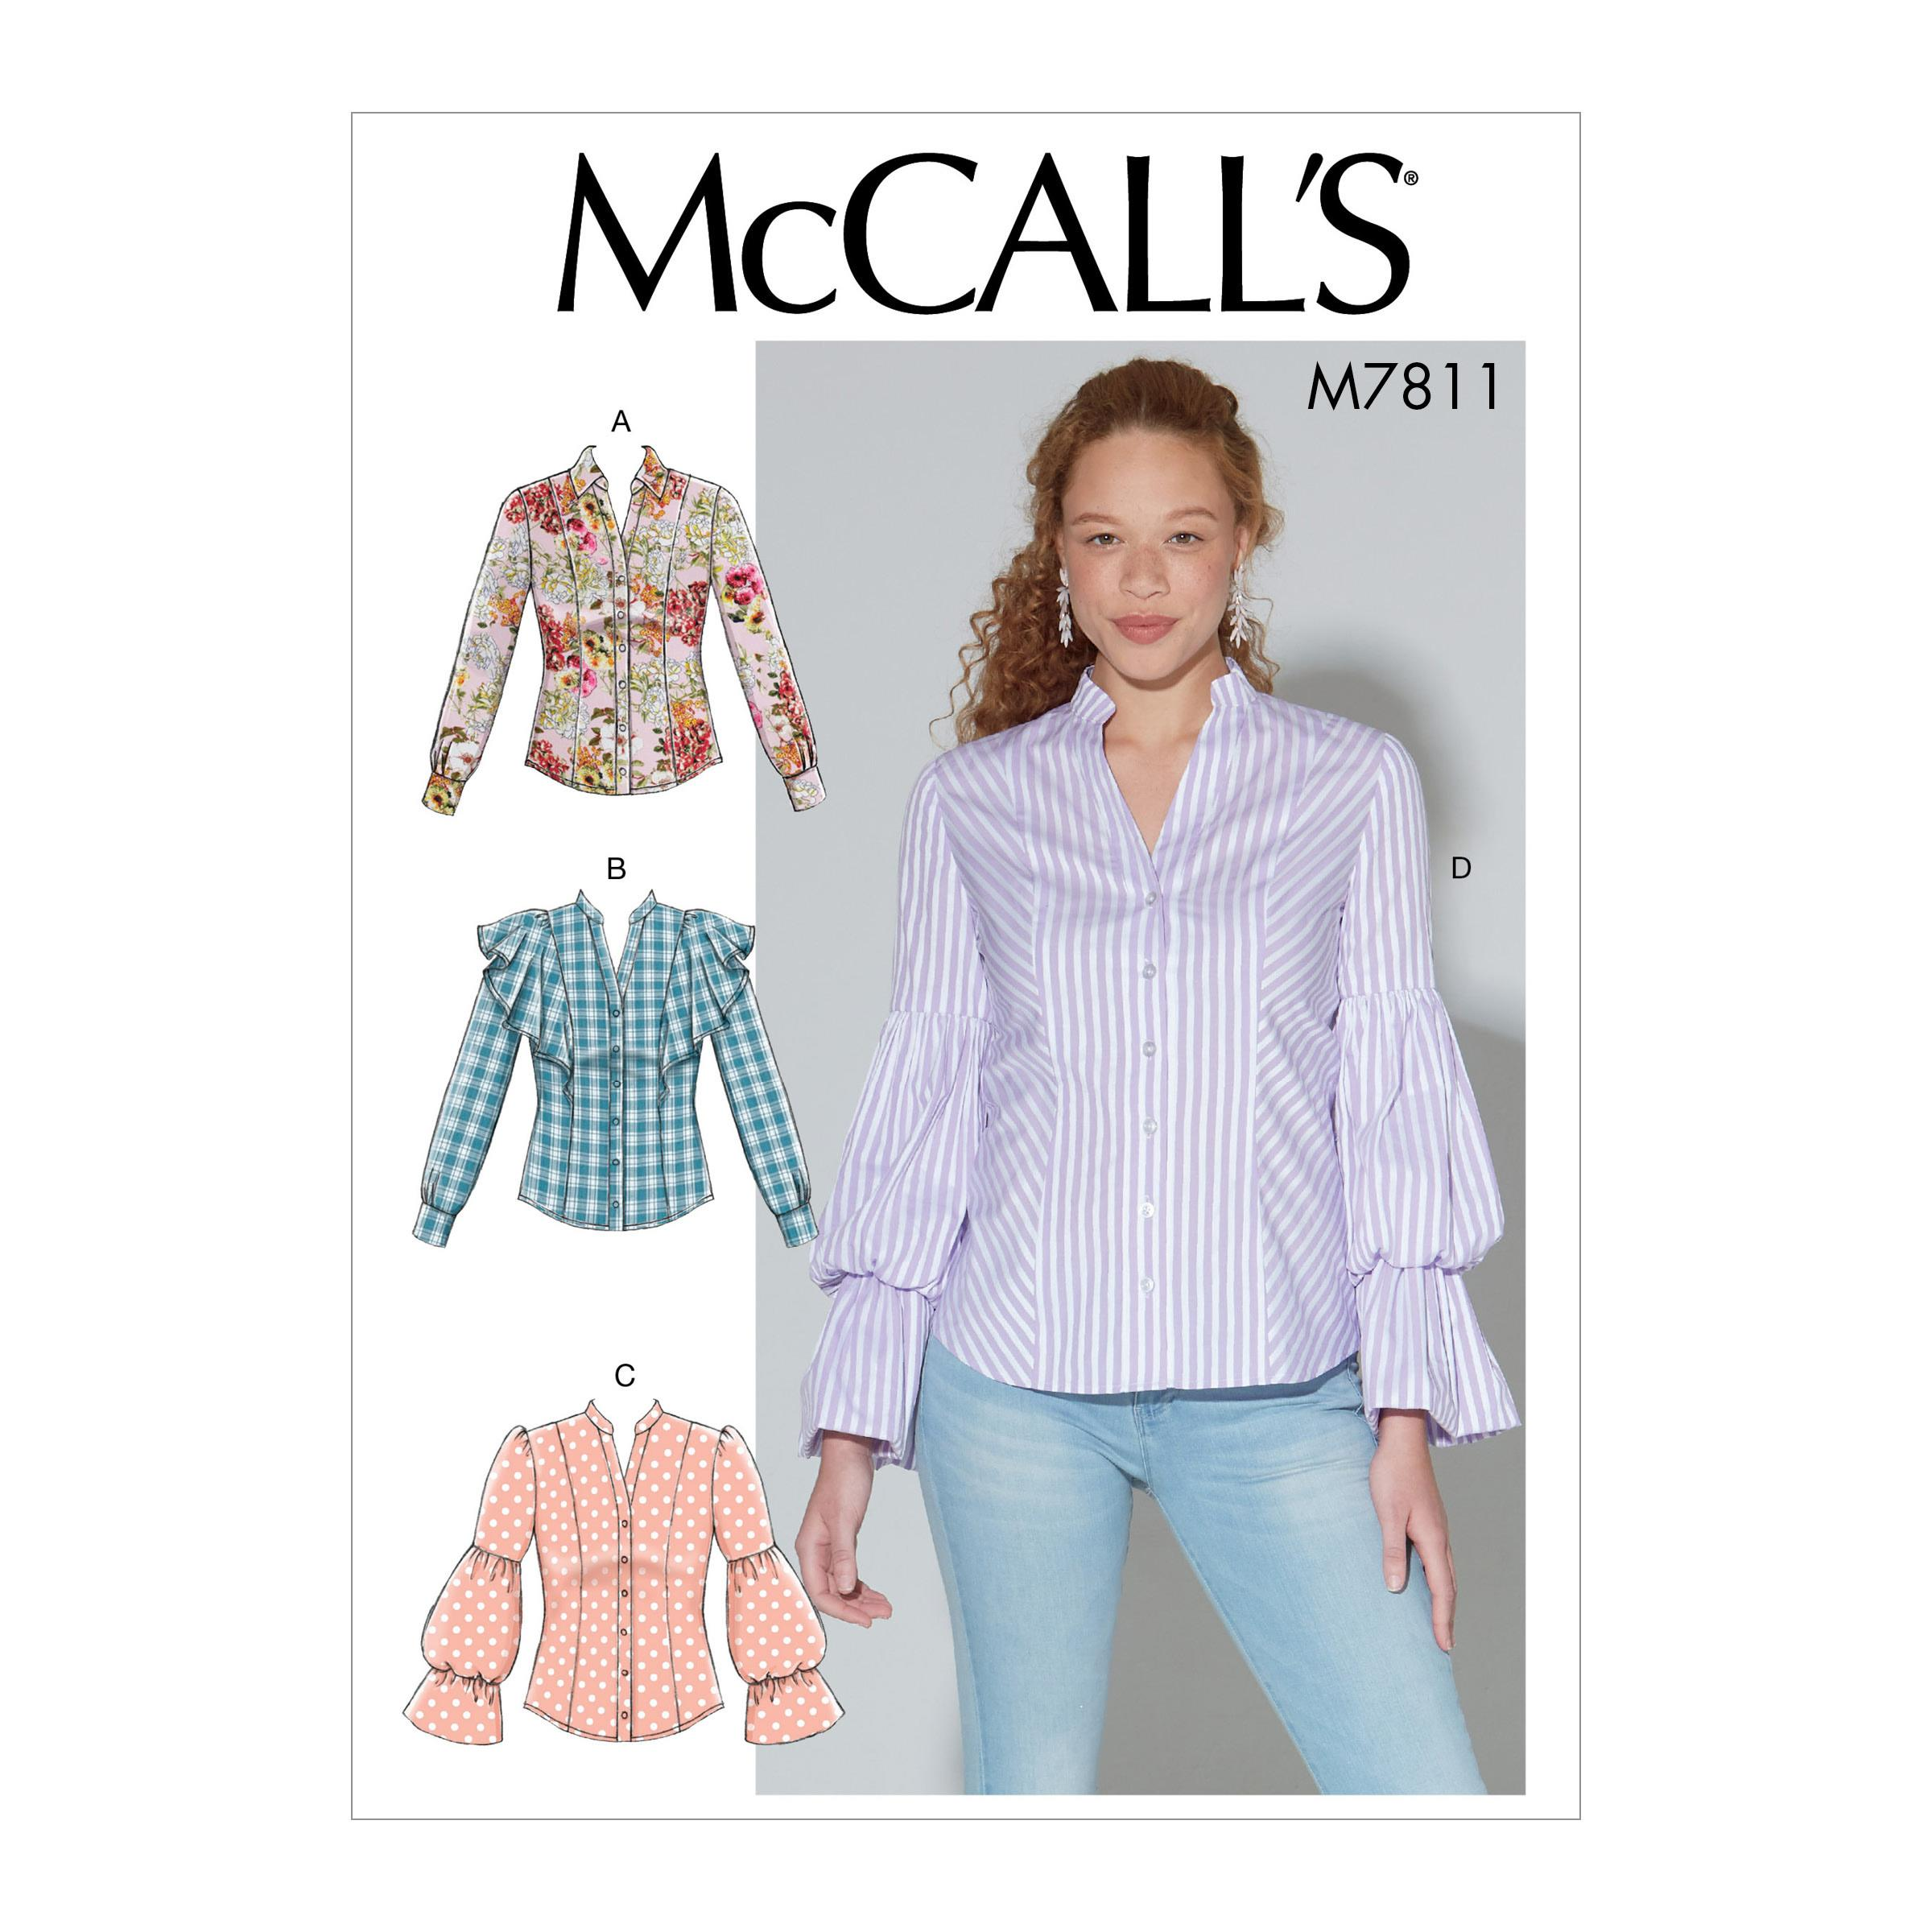 McCalls M7811 Misses Tops